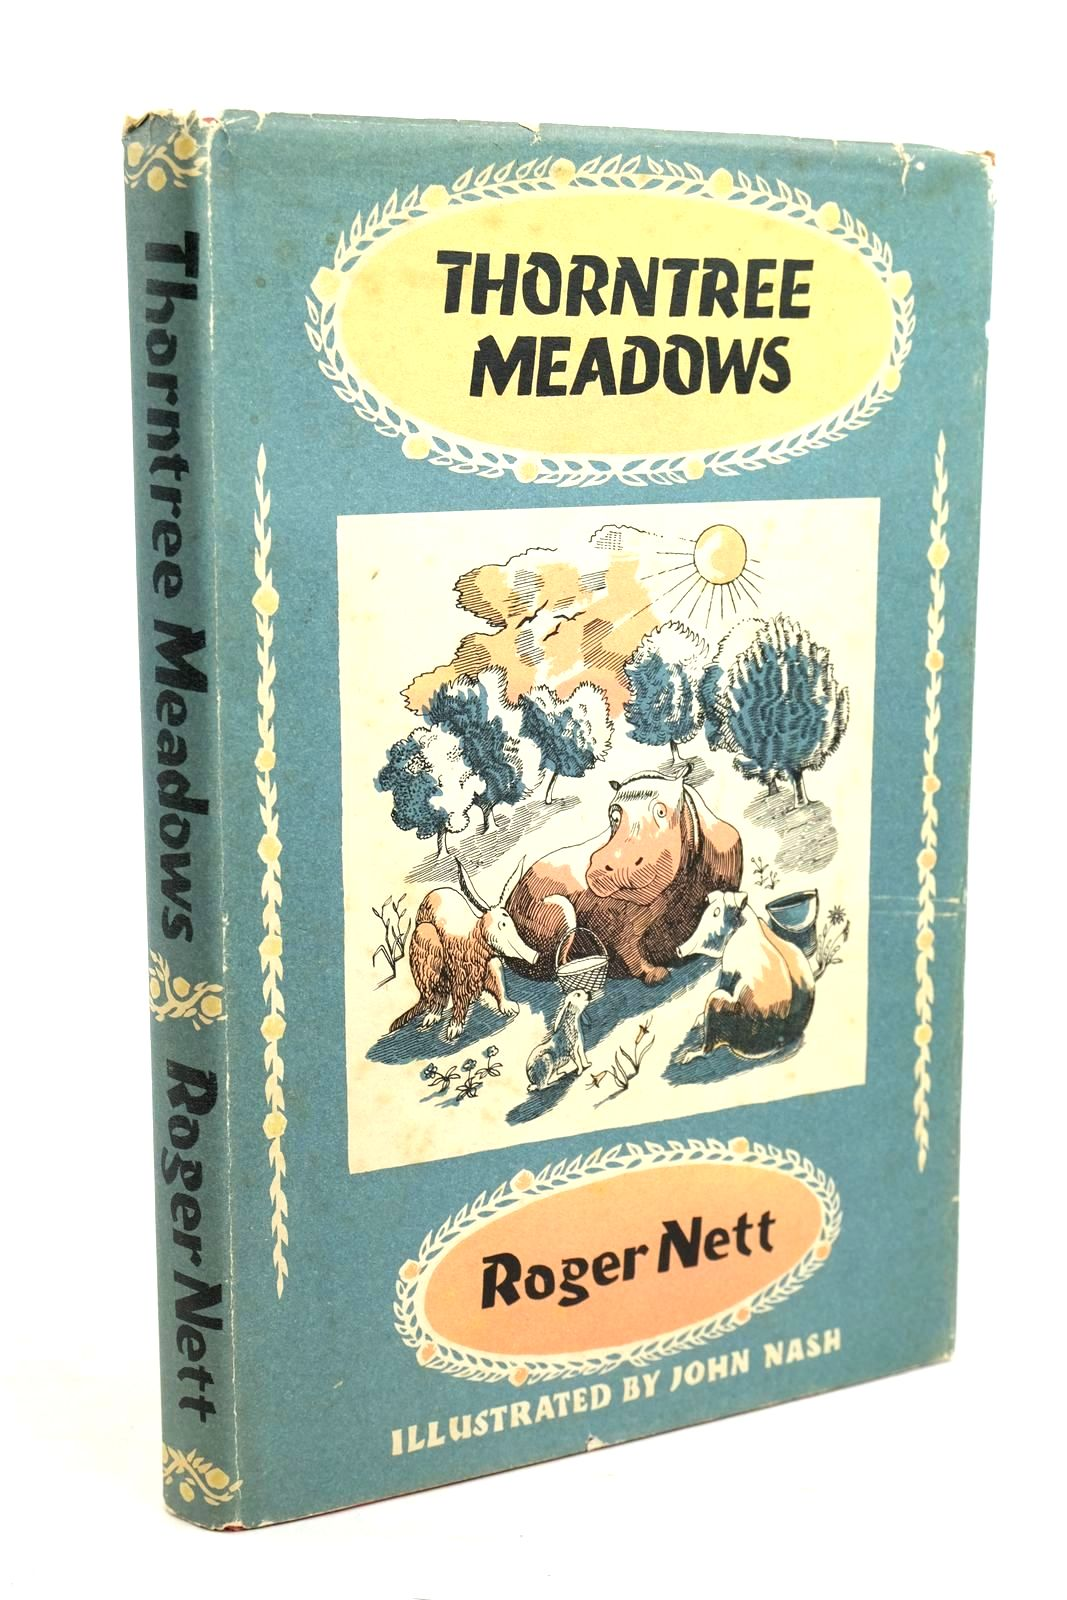 Photo of THORNTREE MEADOWS written by Nett, Roger illustrated by Nash, John published by Thomas Nelson and Sons Ltd. (STOCK CODE: 1320445)  for sale by Stella & Rose's Books